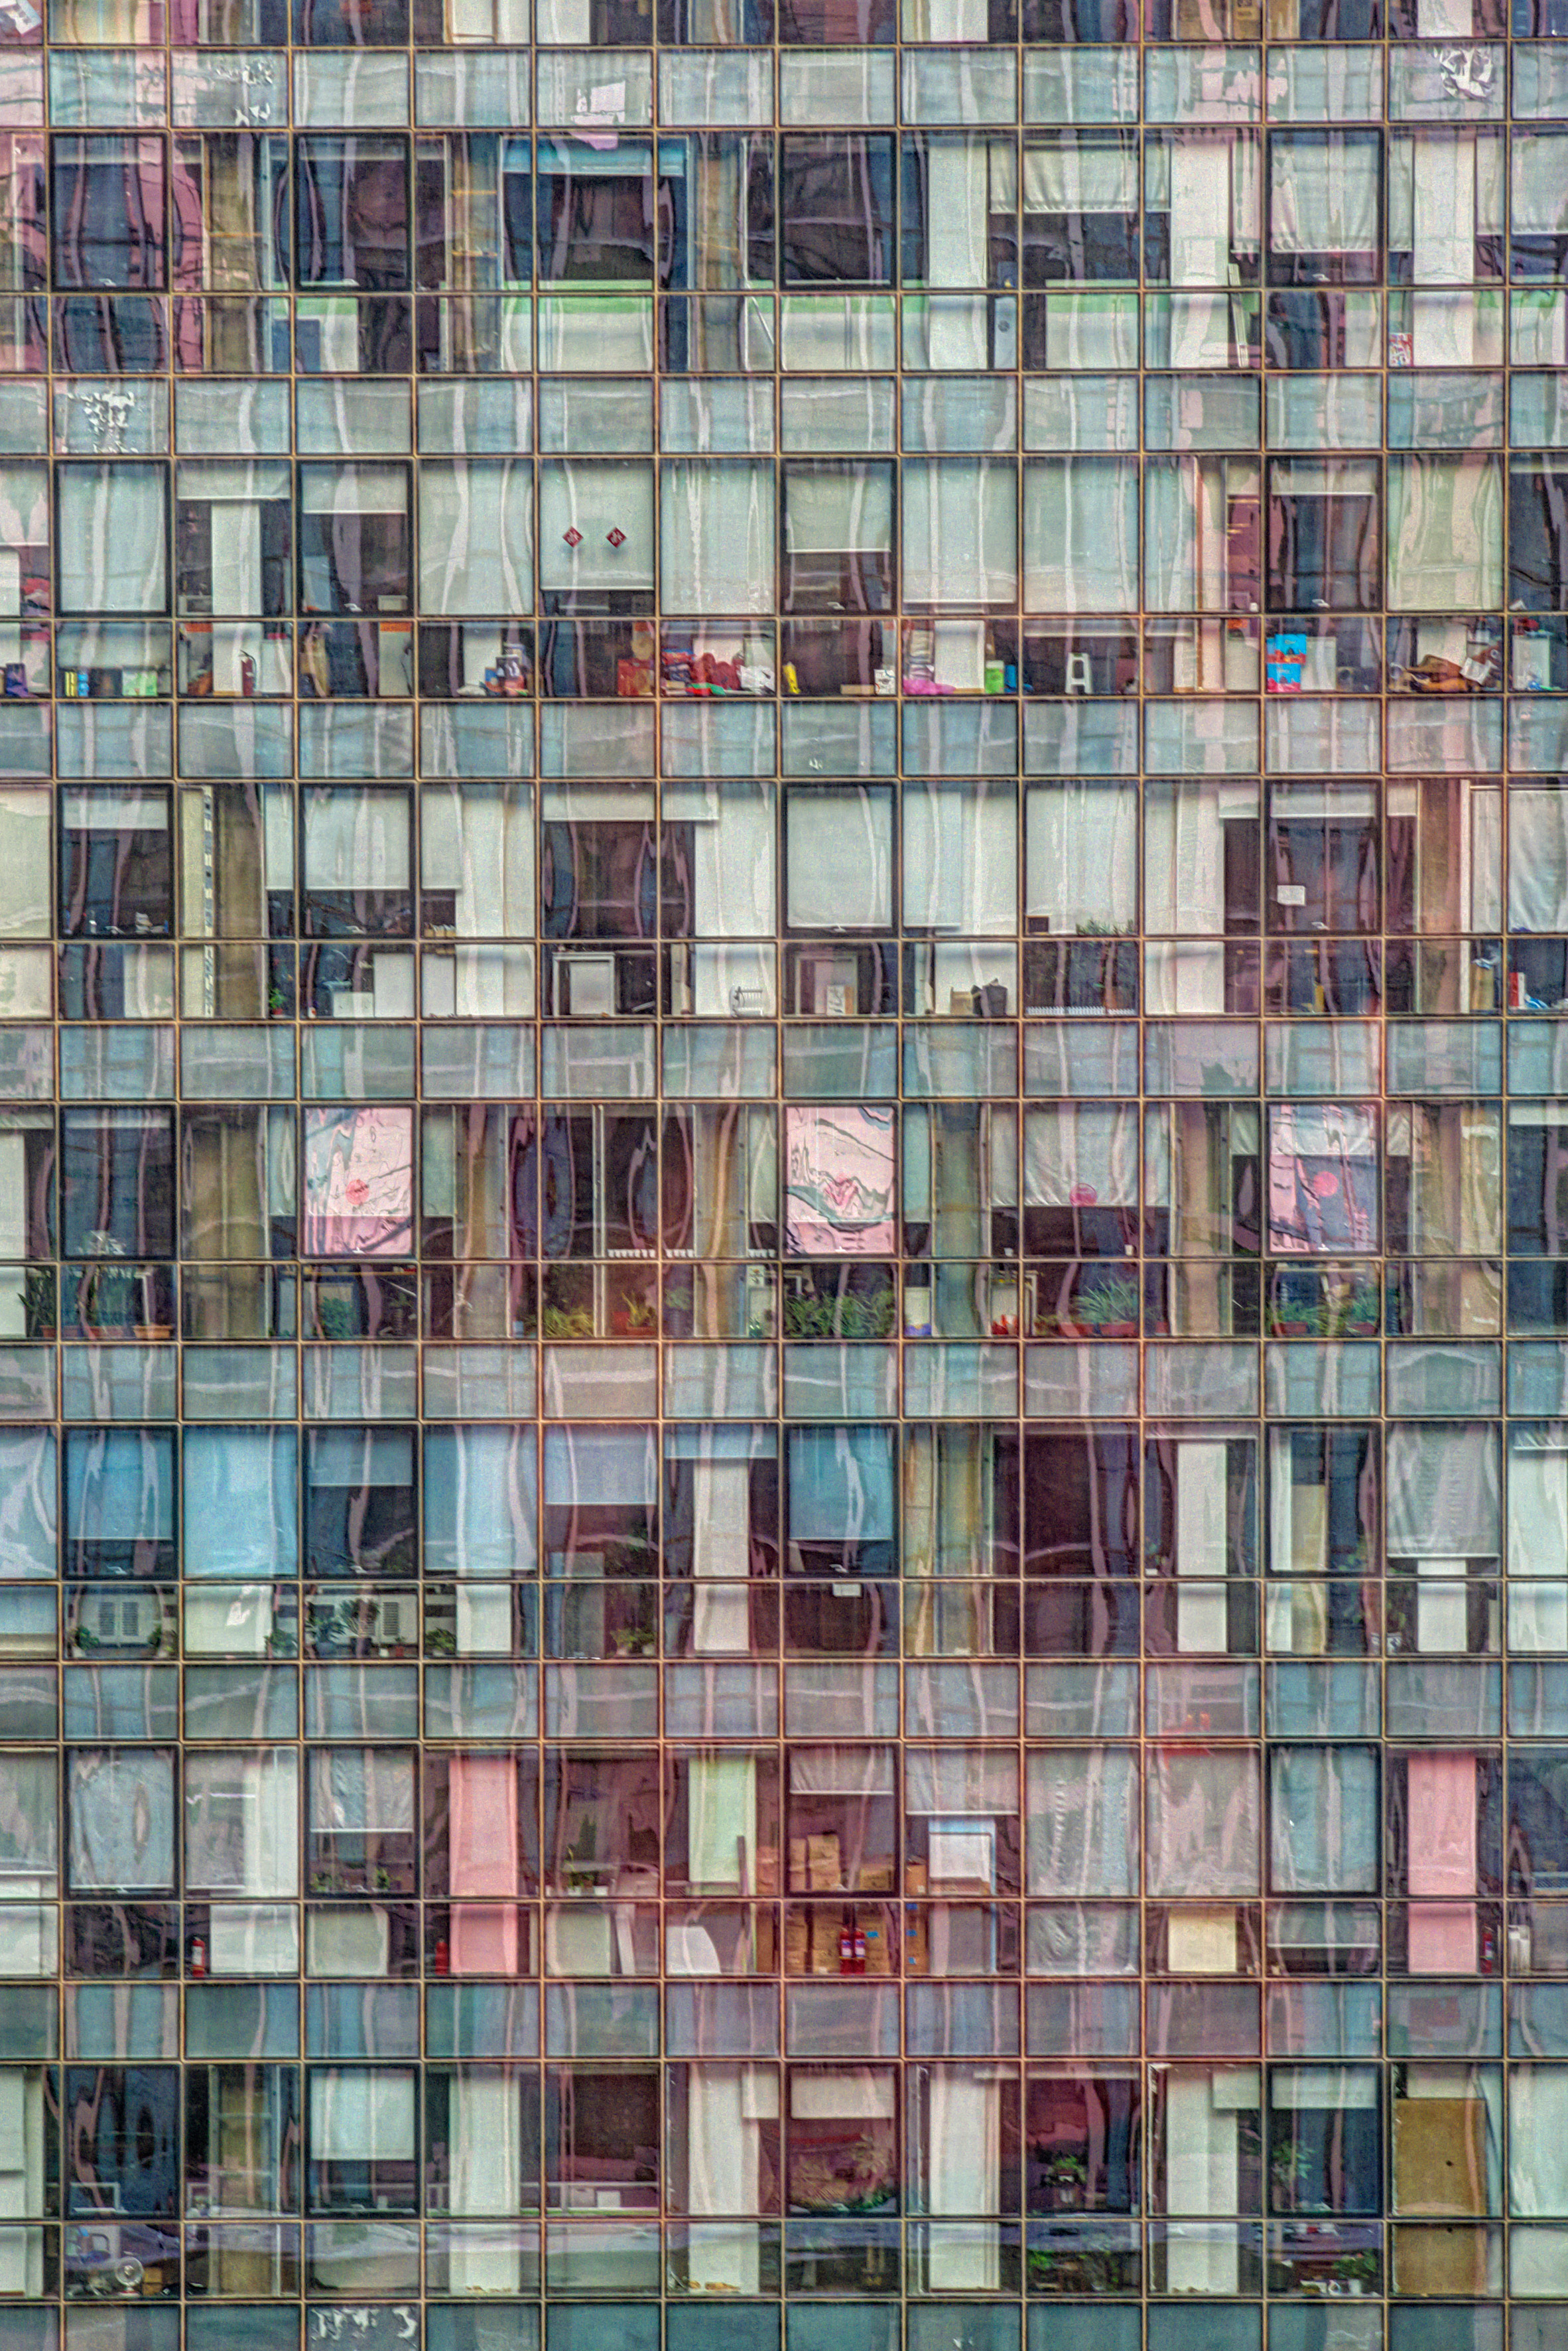 Office building, Beijing, China